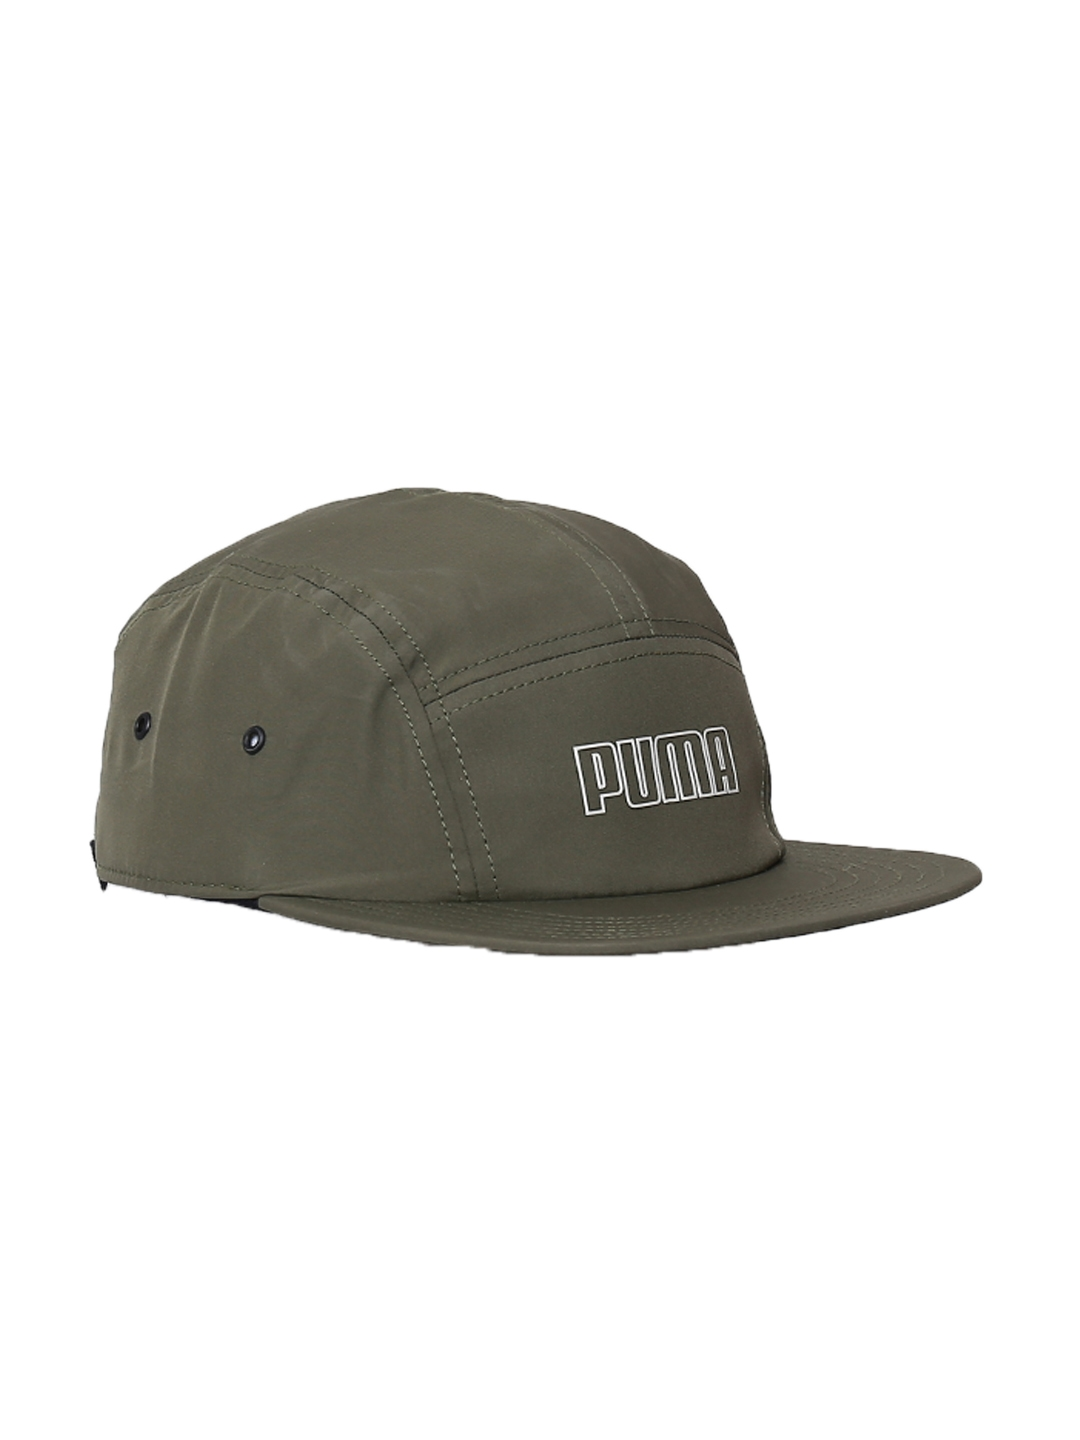 590a91f4ba8 Buy Puma Unisex Olive Green ARCHIVE 5 Panels Cap - Caps for Unisex ...